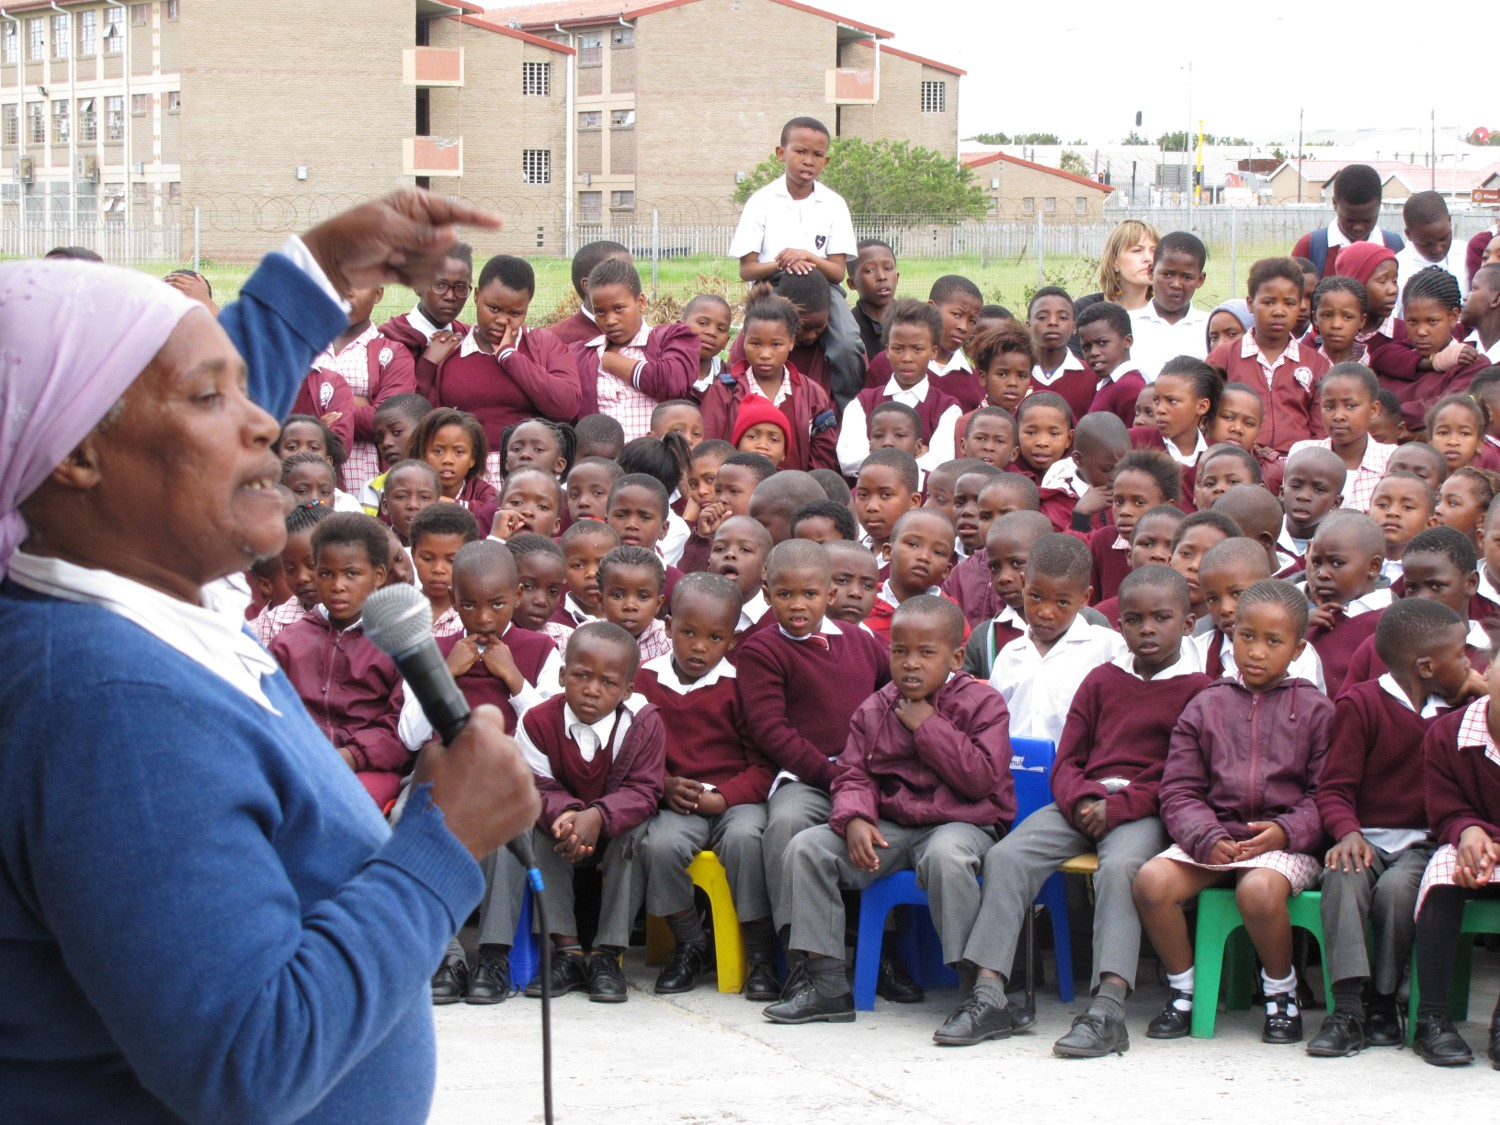 Listening faces, School Storytelling Tour, Khayelitsha 2015